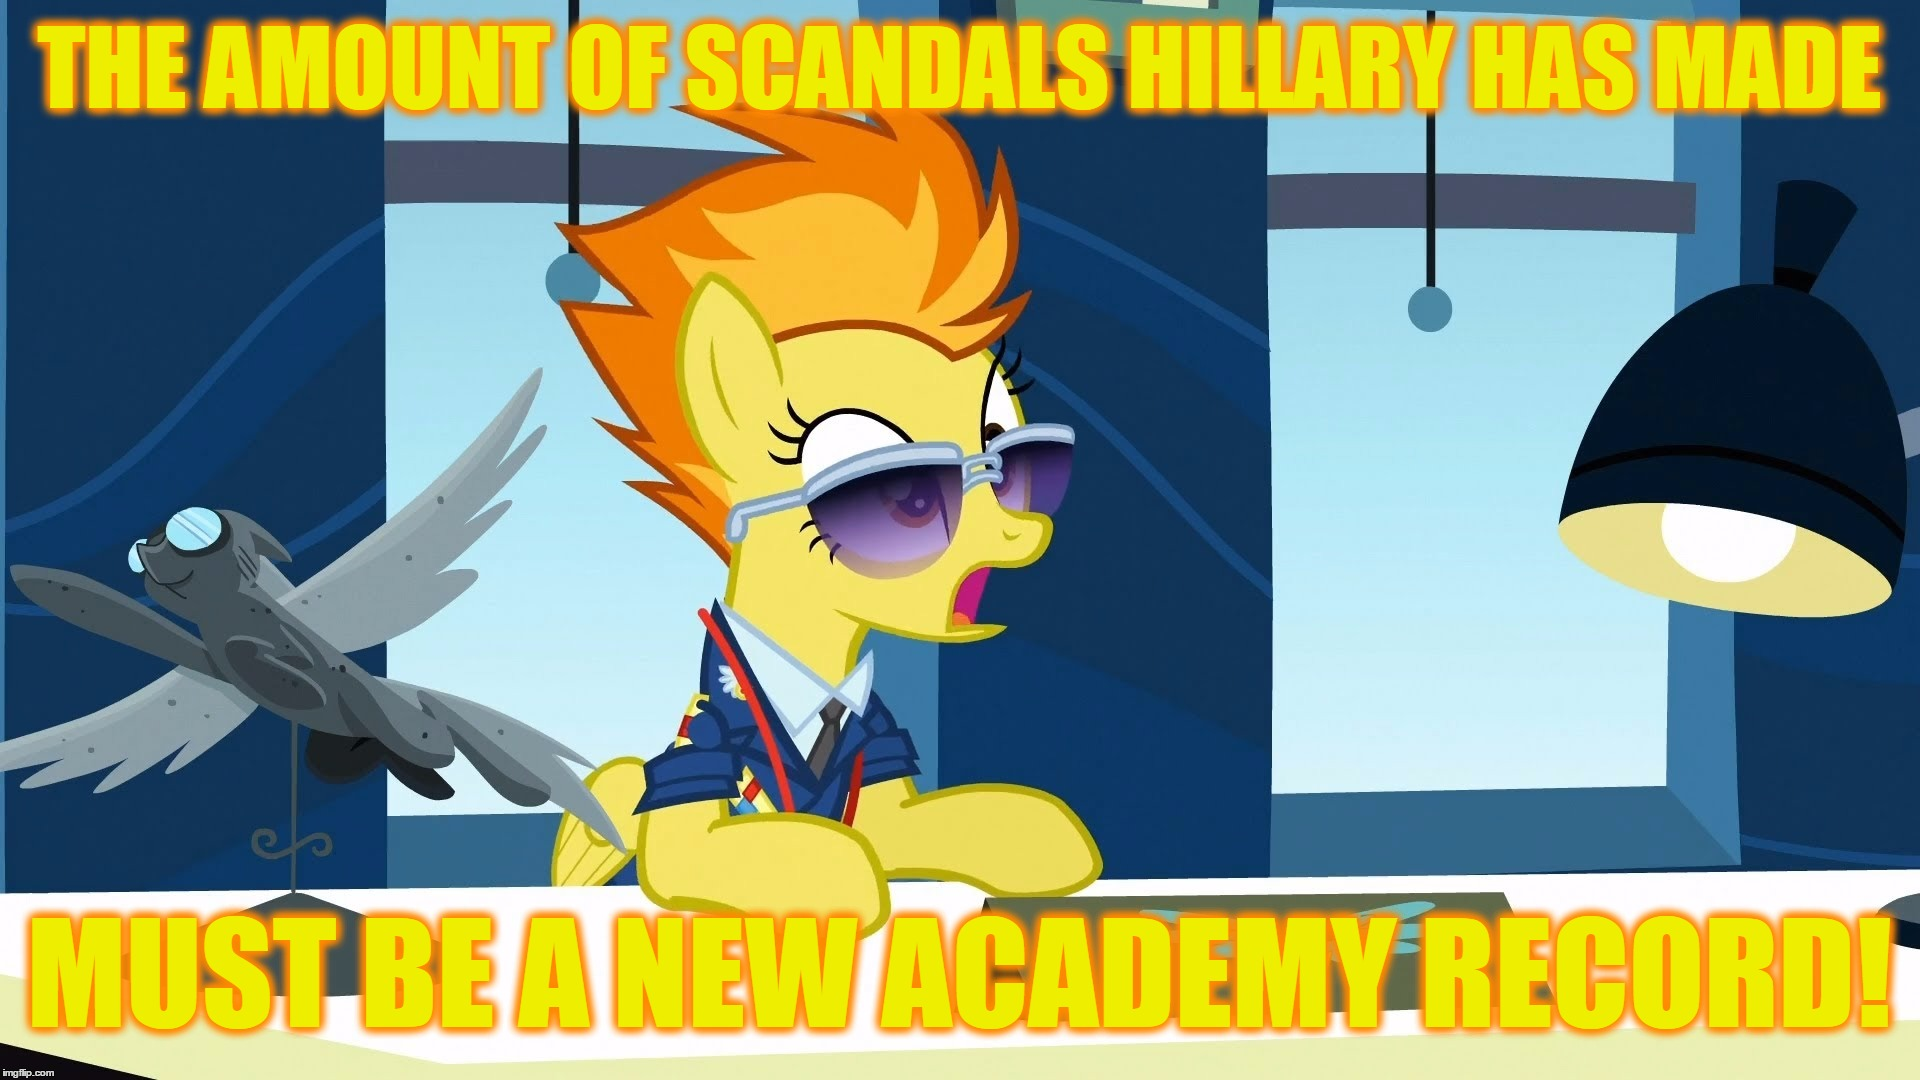 Spitfire That's A New Academy Record | THE AMOUNT OF SCANDALS HILLARY HAS MADE MUST BE A NEW ACADEMY RECORD! | image tagged in spitfire that's a new academy record | made w/ Imgflip meme maker